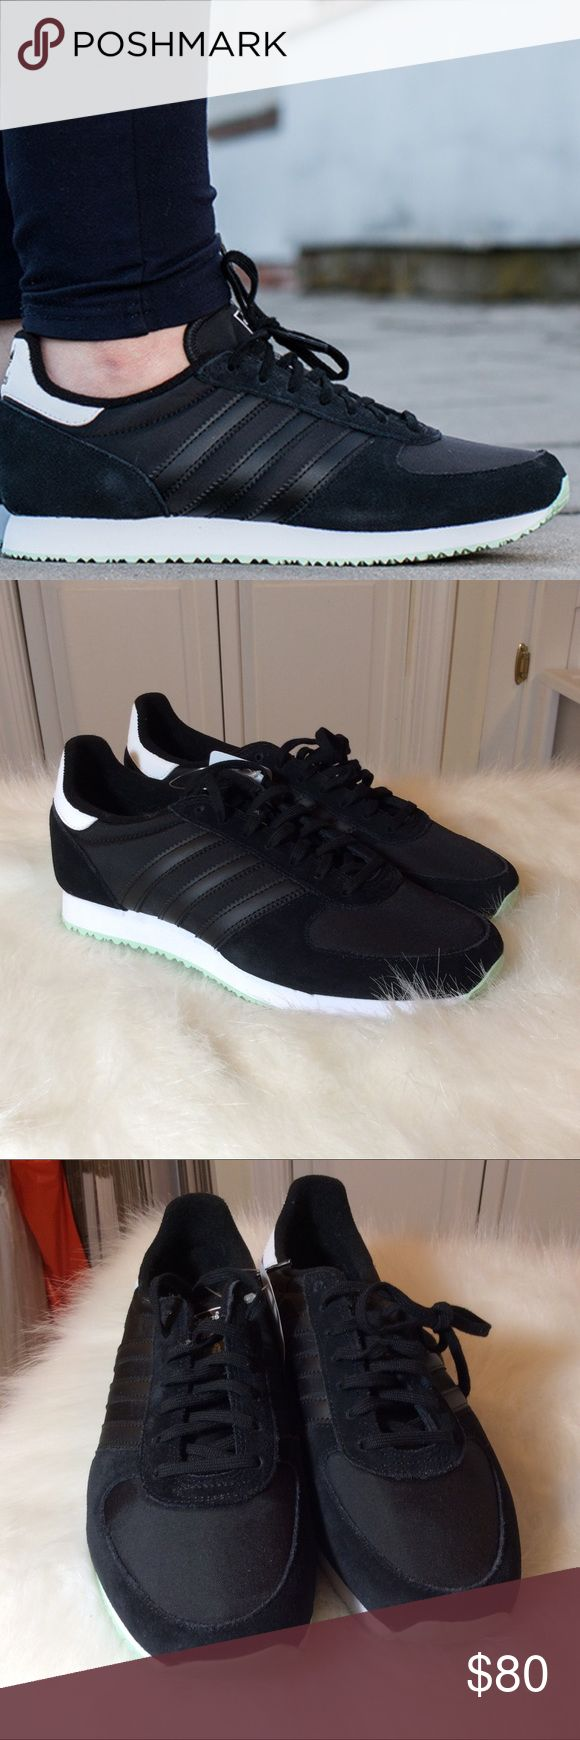 Adidas ZX Racer Women's size 8.  Brand new in box.  Black upper, teal sole adidas Shoes Sneakers